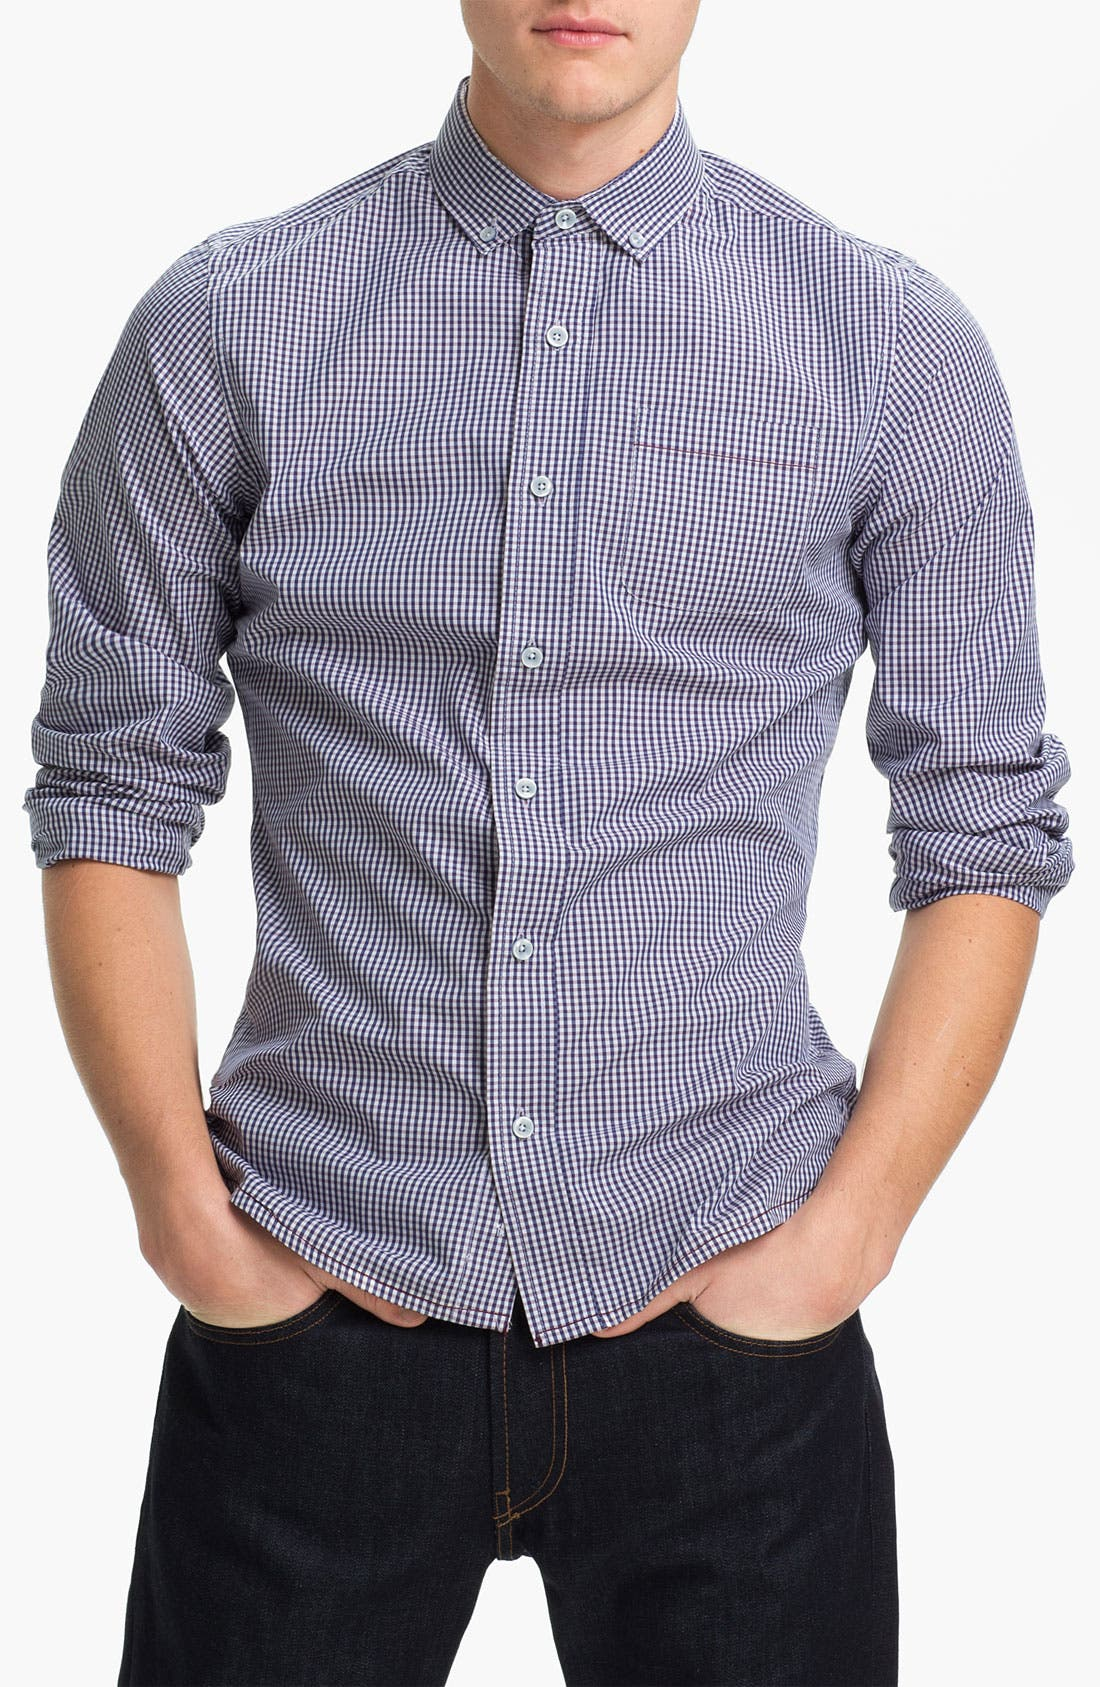 Alternate Image 1 Selected - Descendant of Thieves Gingham Woven Shirt